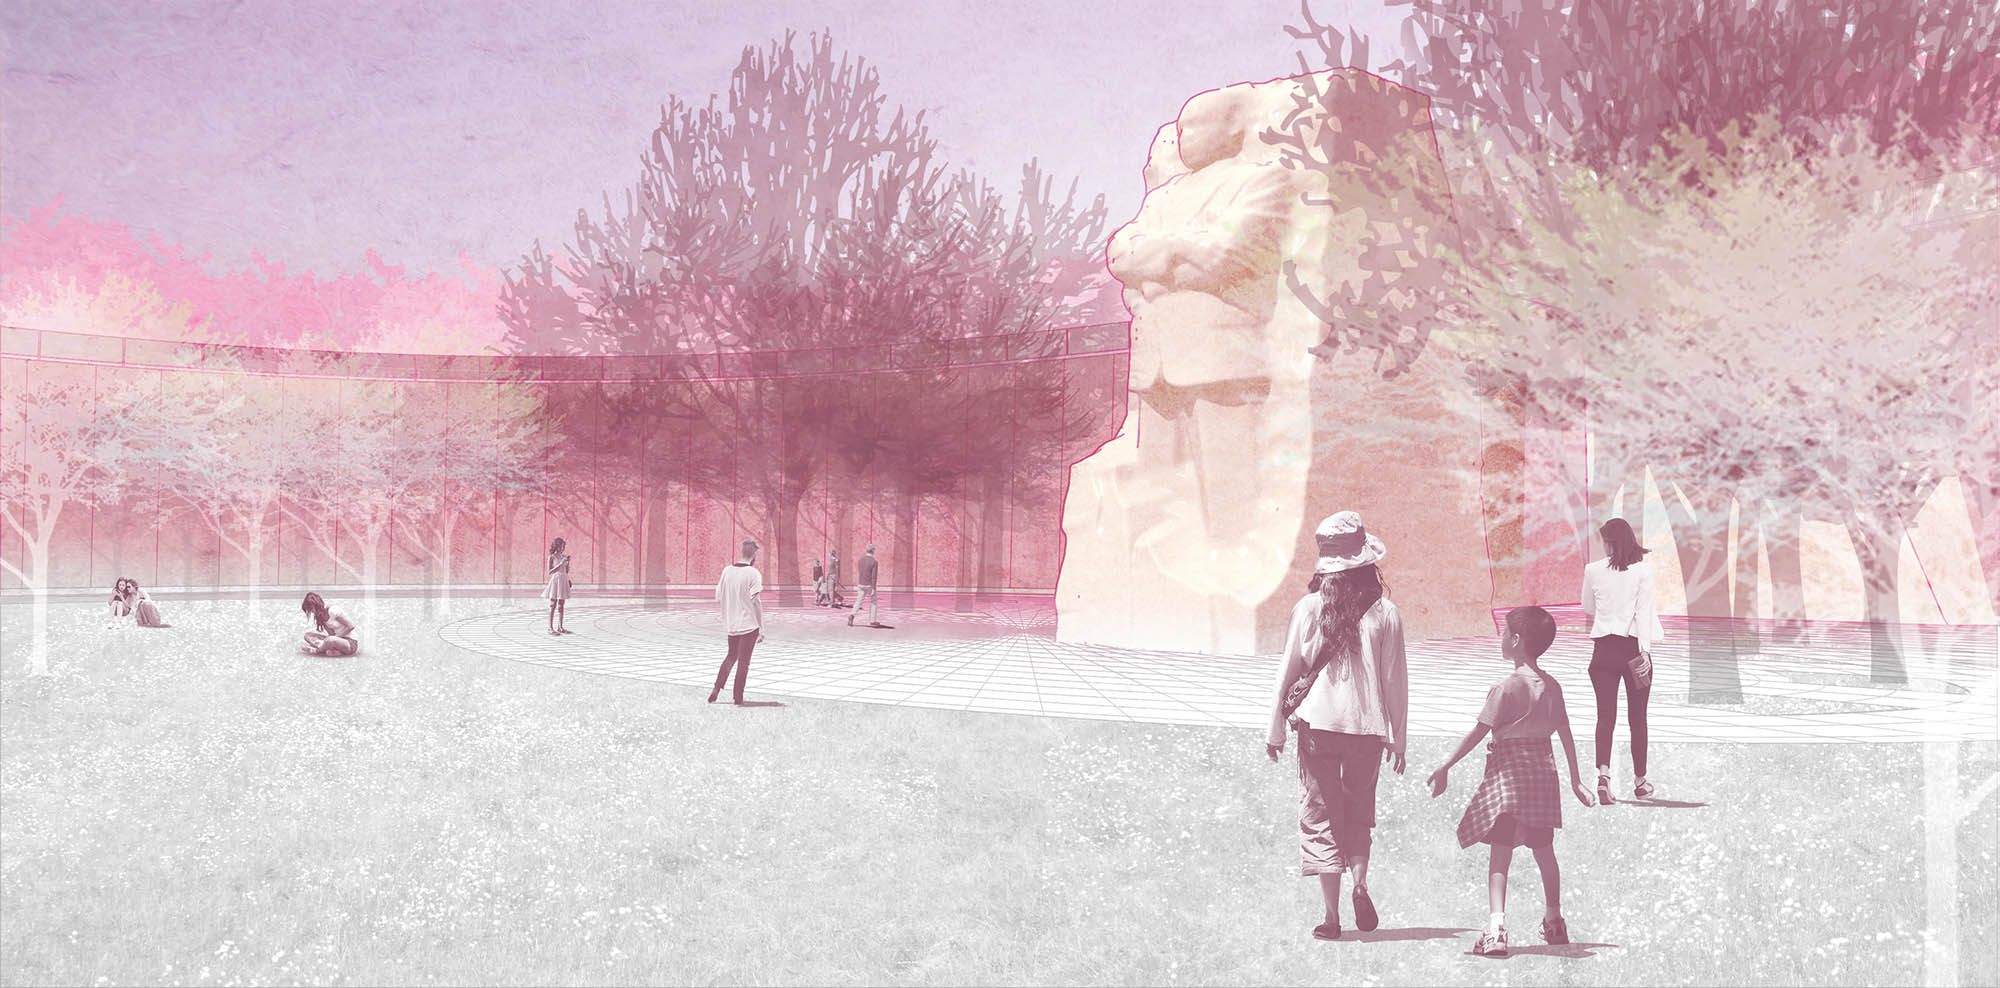 Rendering showing MLK monument among foliage